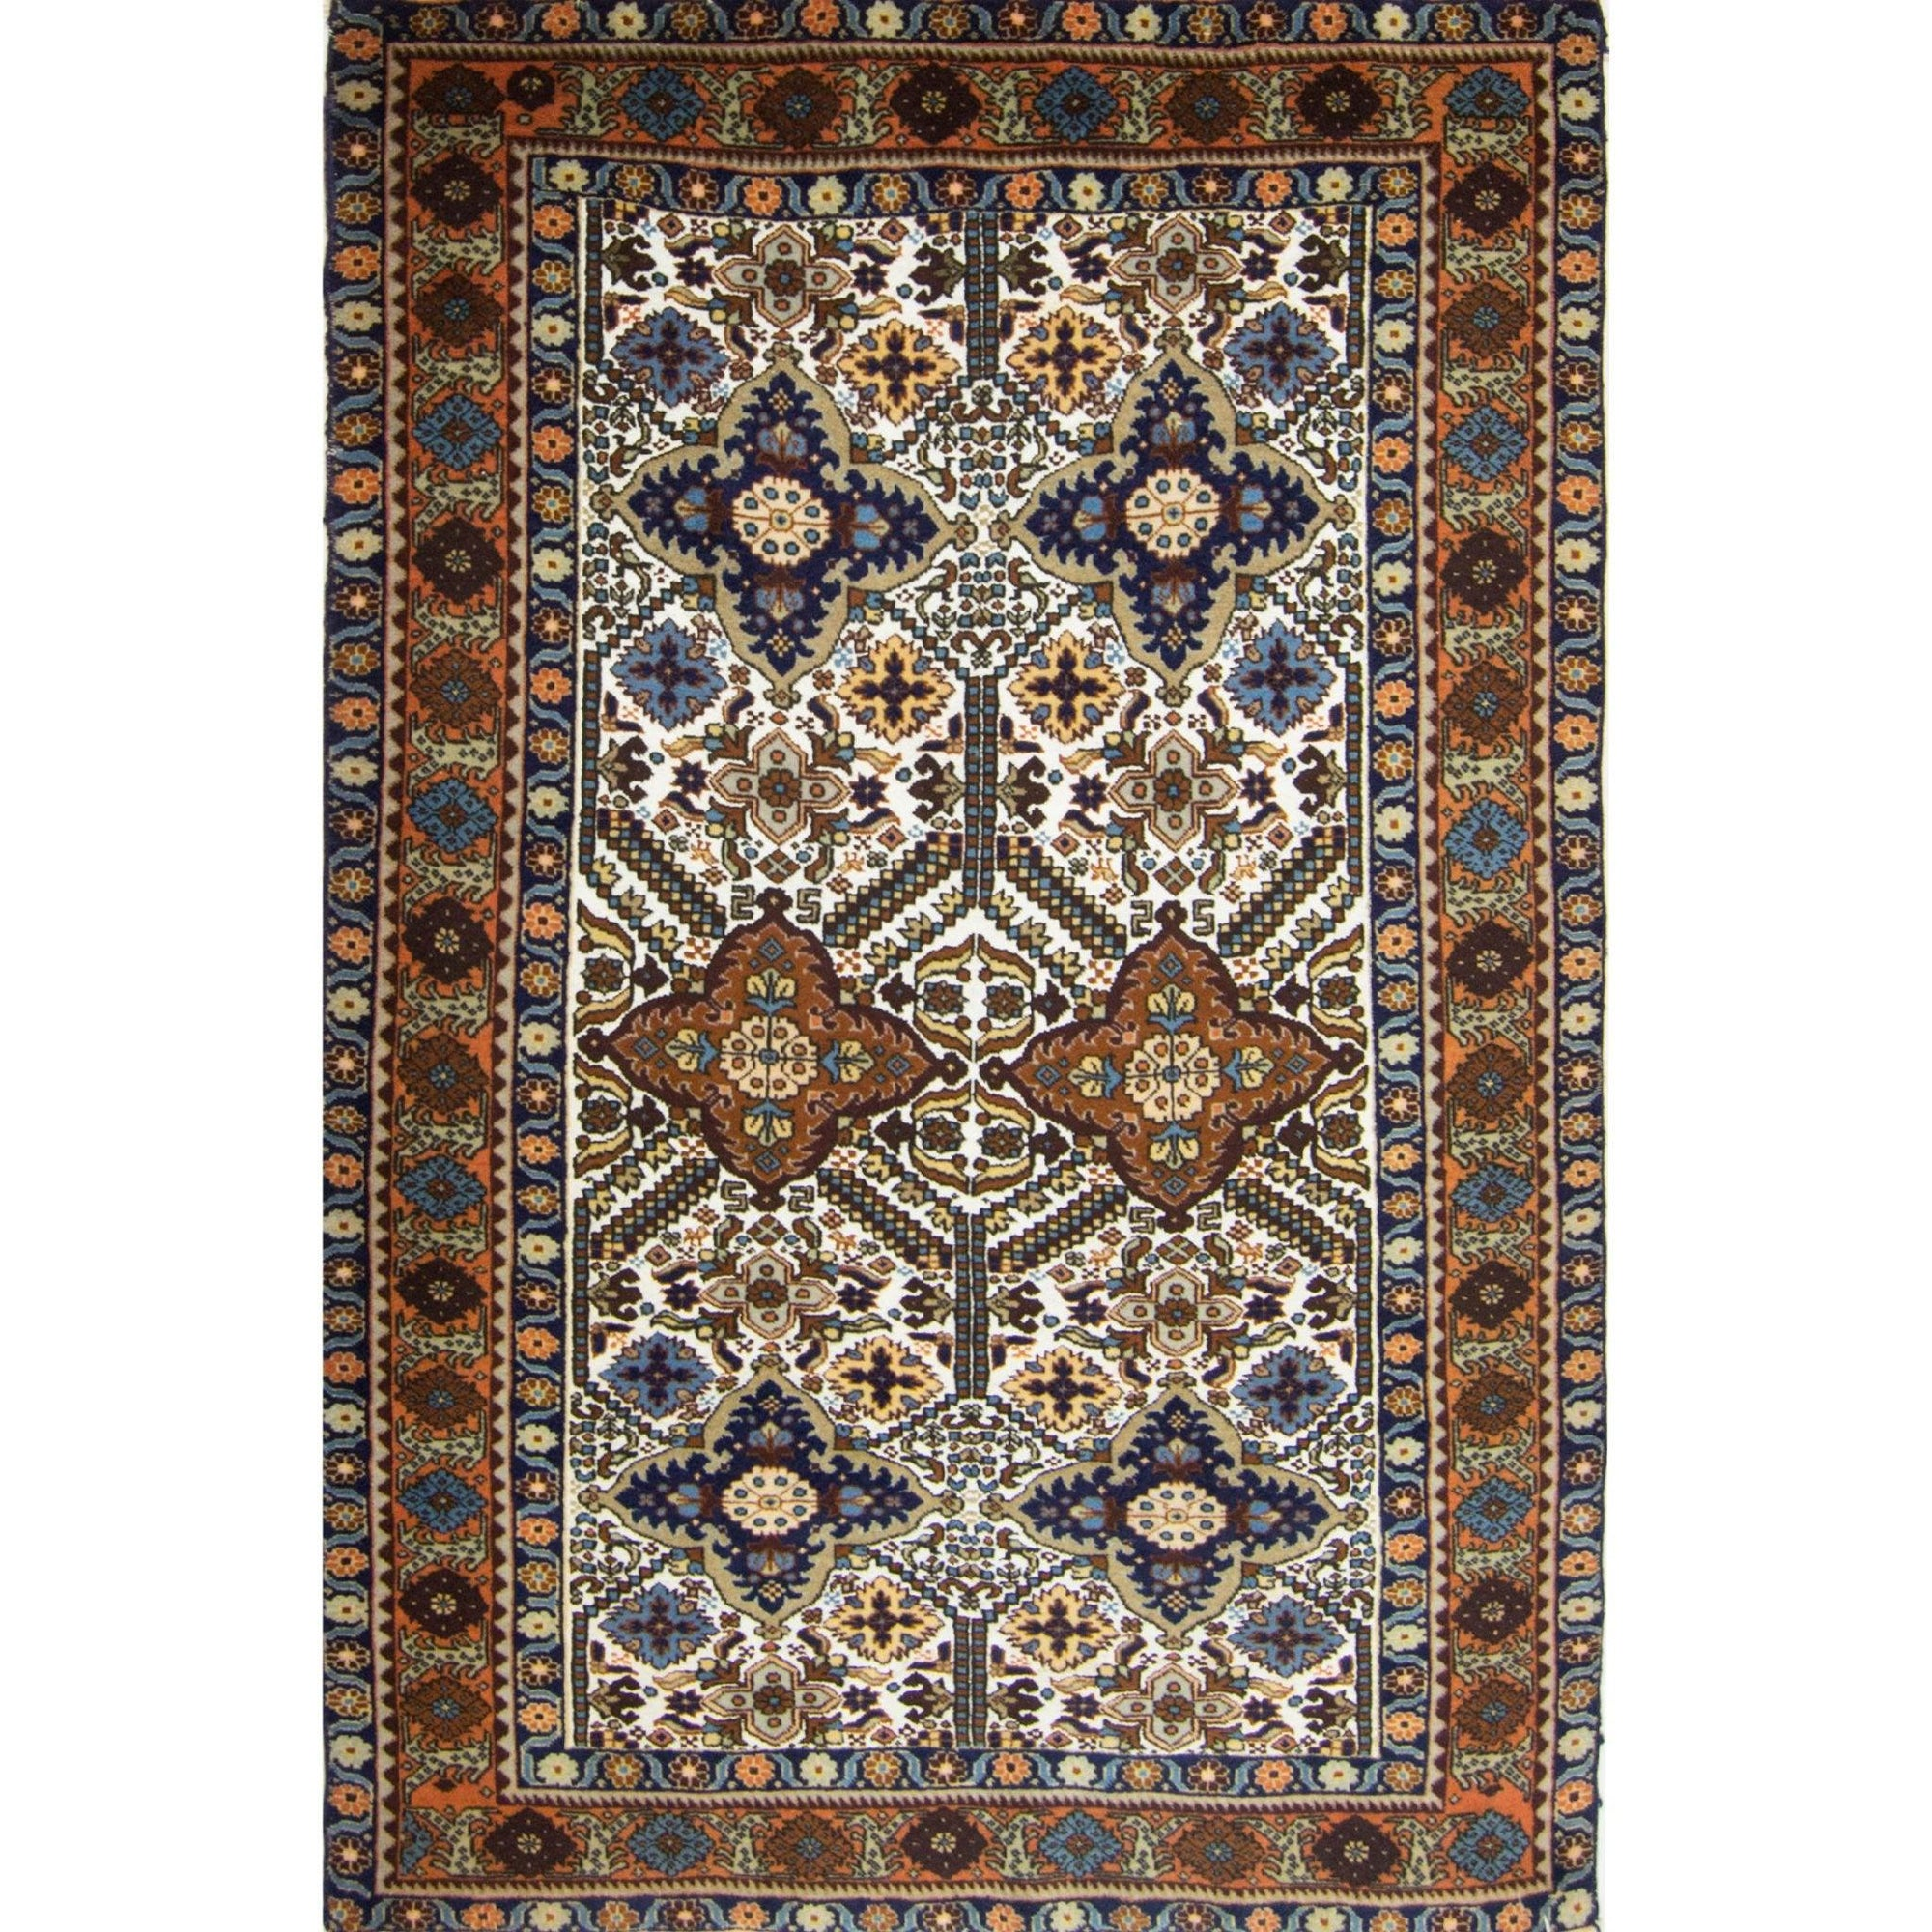 Super Fine Wool and Silk Hand-knotted Persian Ardabil Rug 133cm x 197cm Persian-Rug | House-of-Haghi | NewMarket | Auckland | NZ | Handmade Persian Rugs | Hand Knotted Persian Rugs